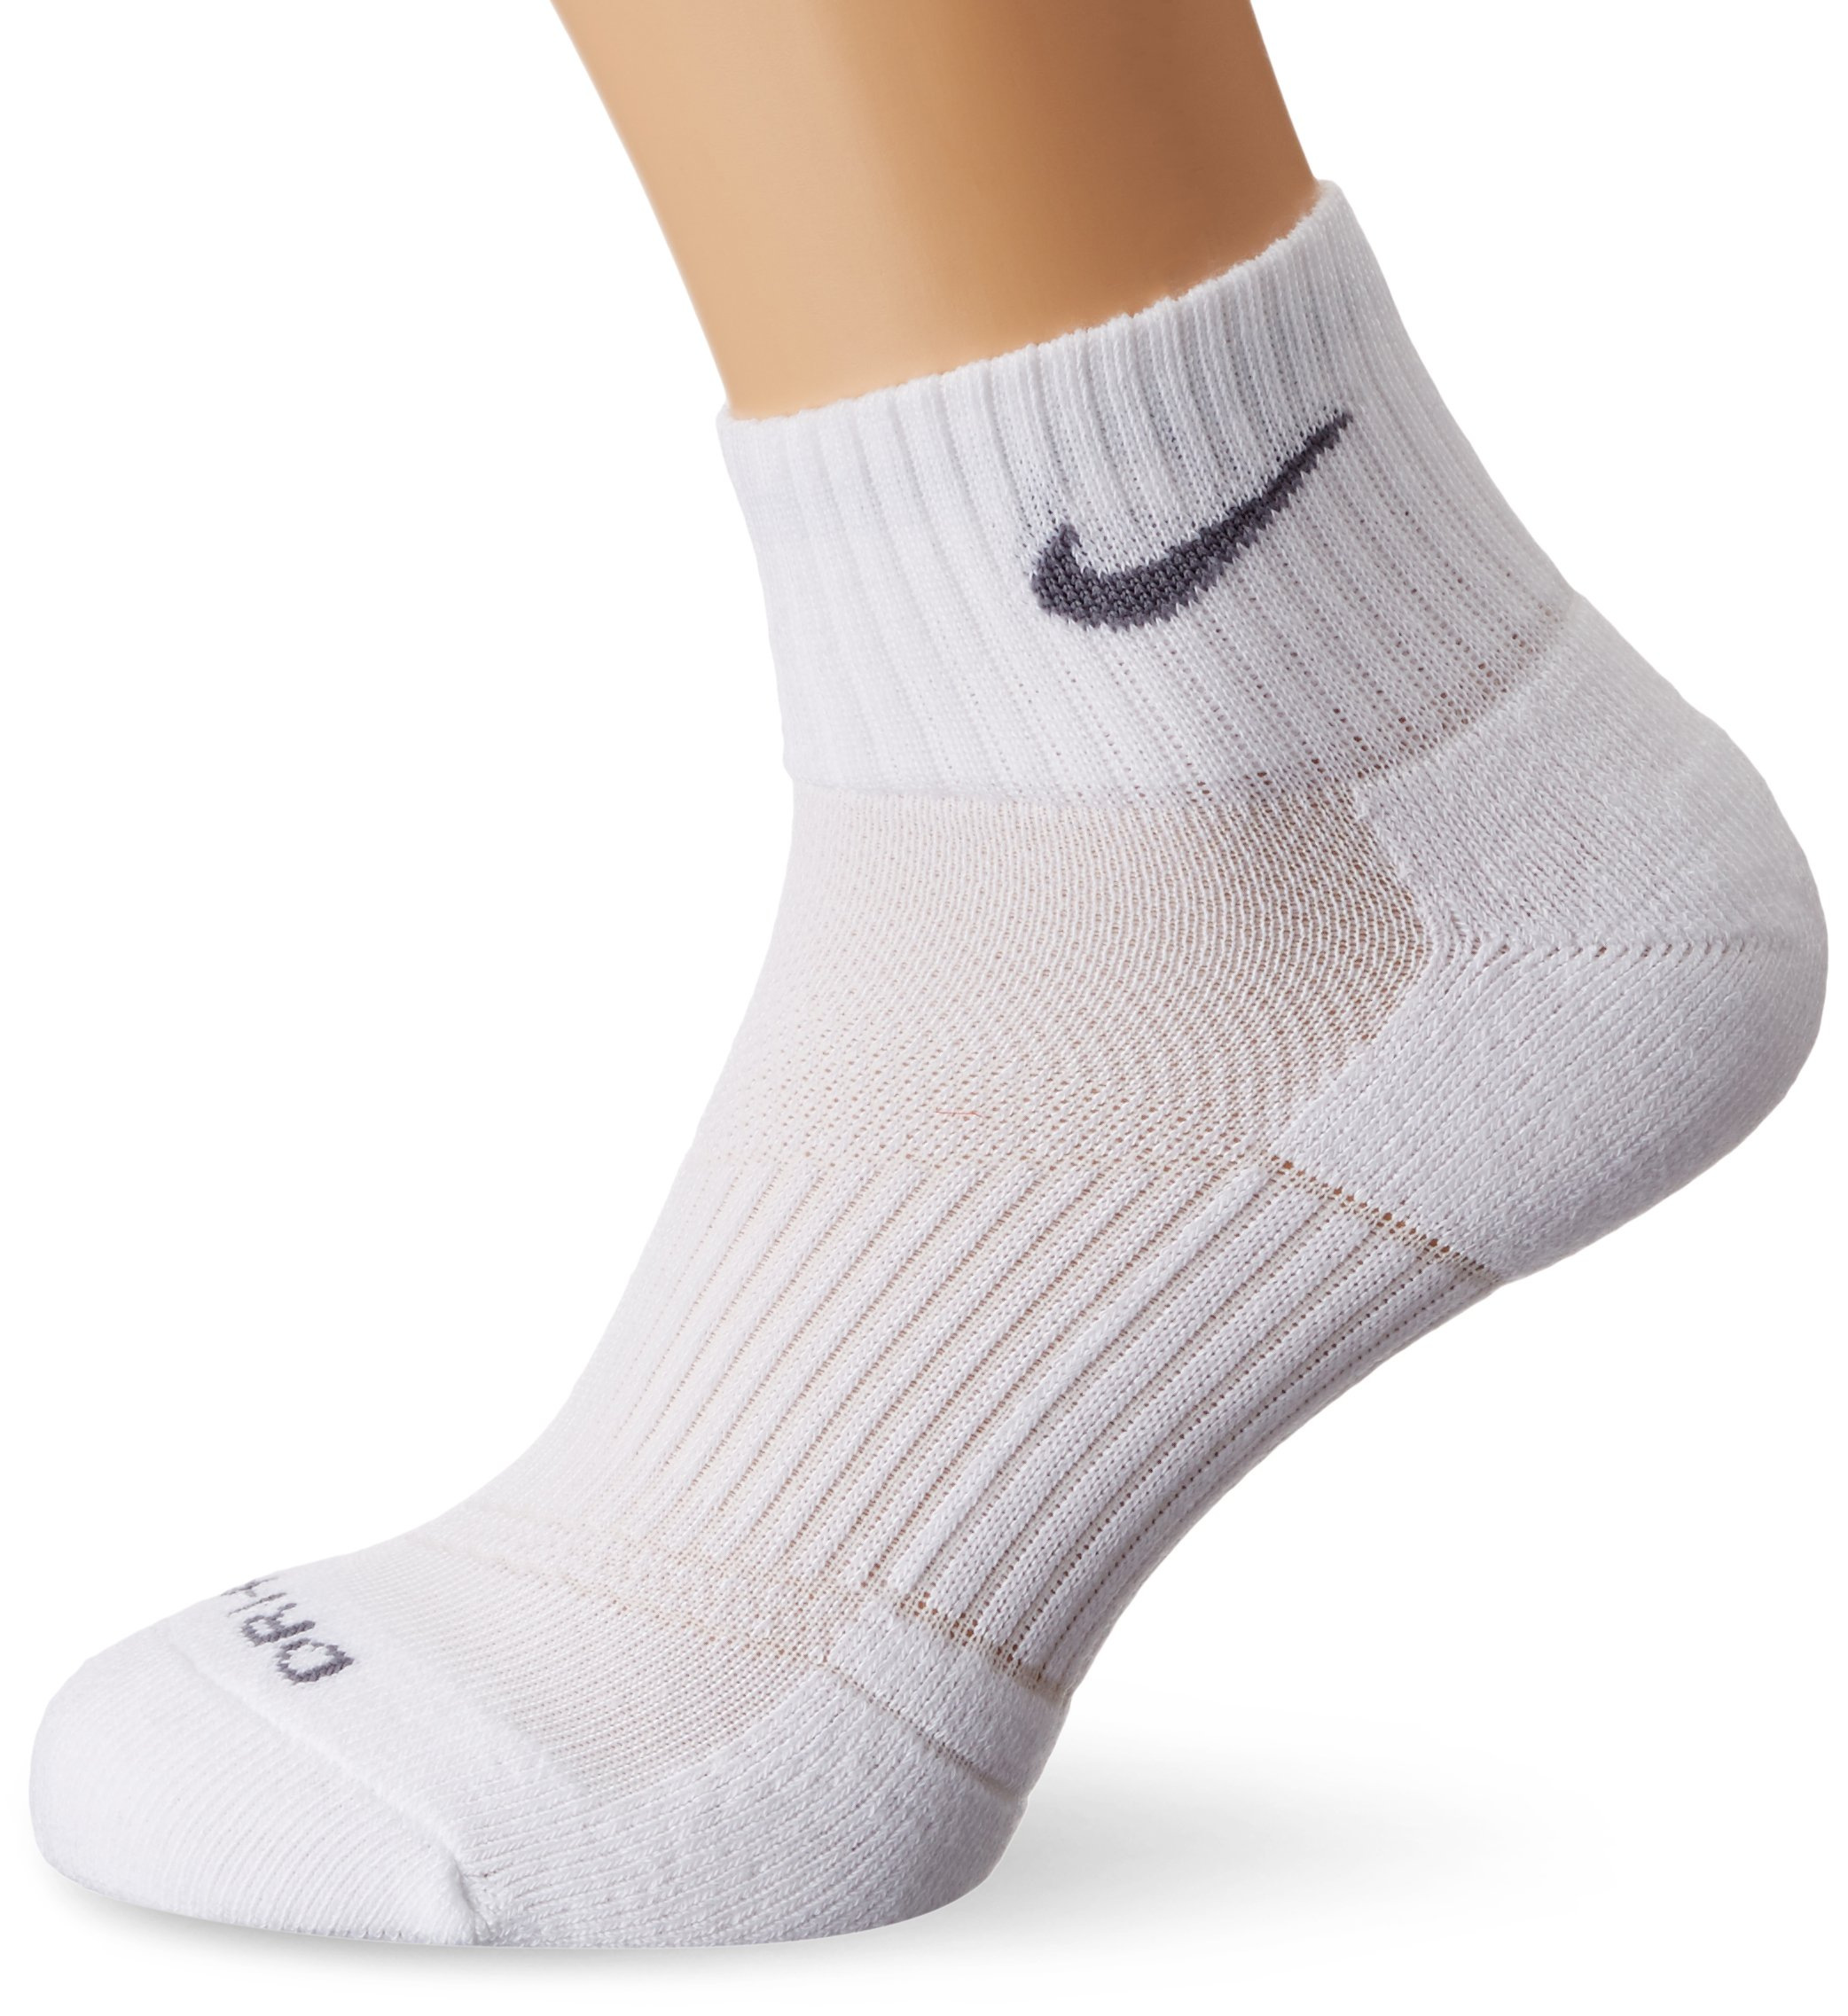 Nike Dri-Fit Half Cushion Quarter Socks (3 Pack) White SX4835-101 Size Medium (6-8)